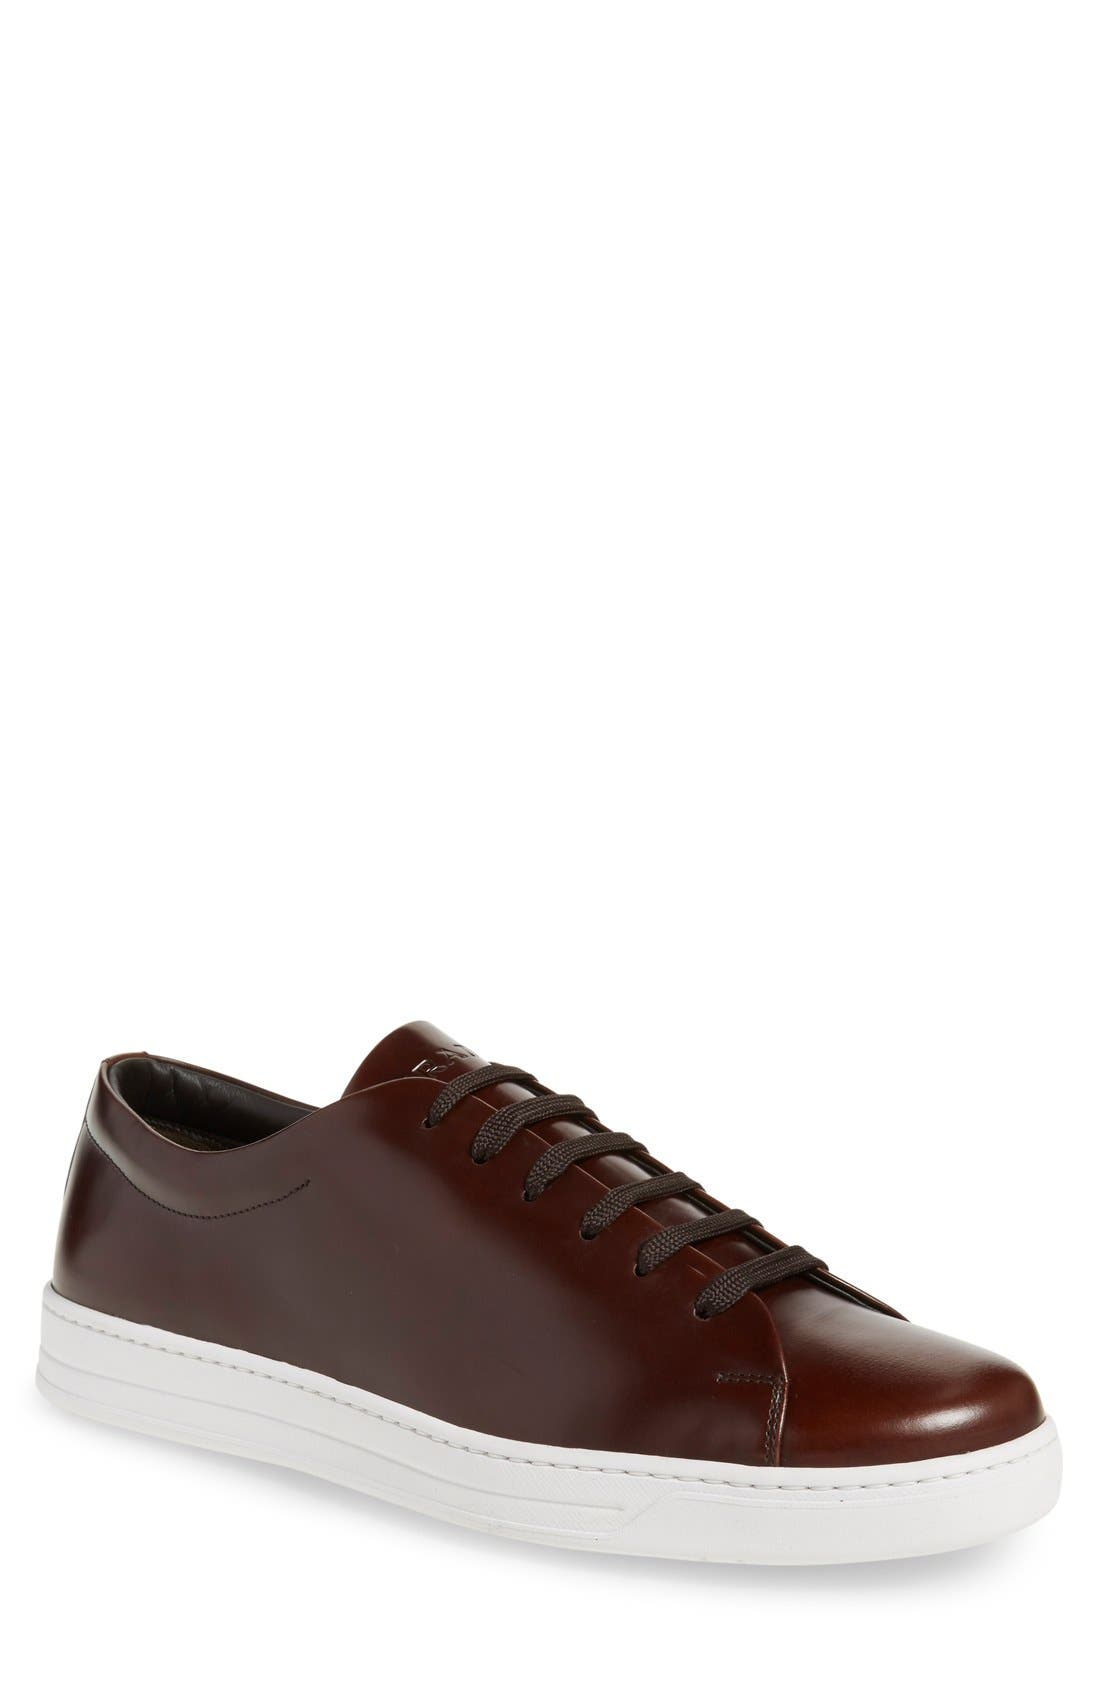 Low Top Sneaker,                             Main thumbnail 1, color,                             Bruciato Leather